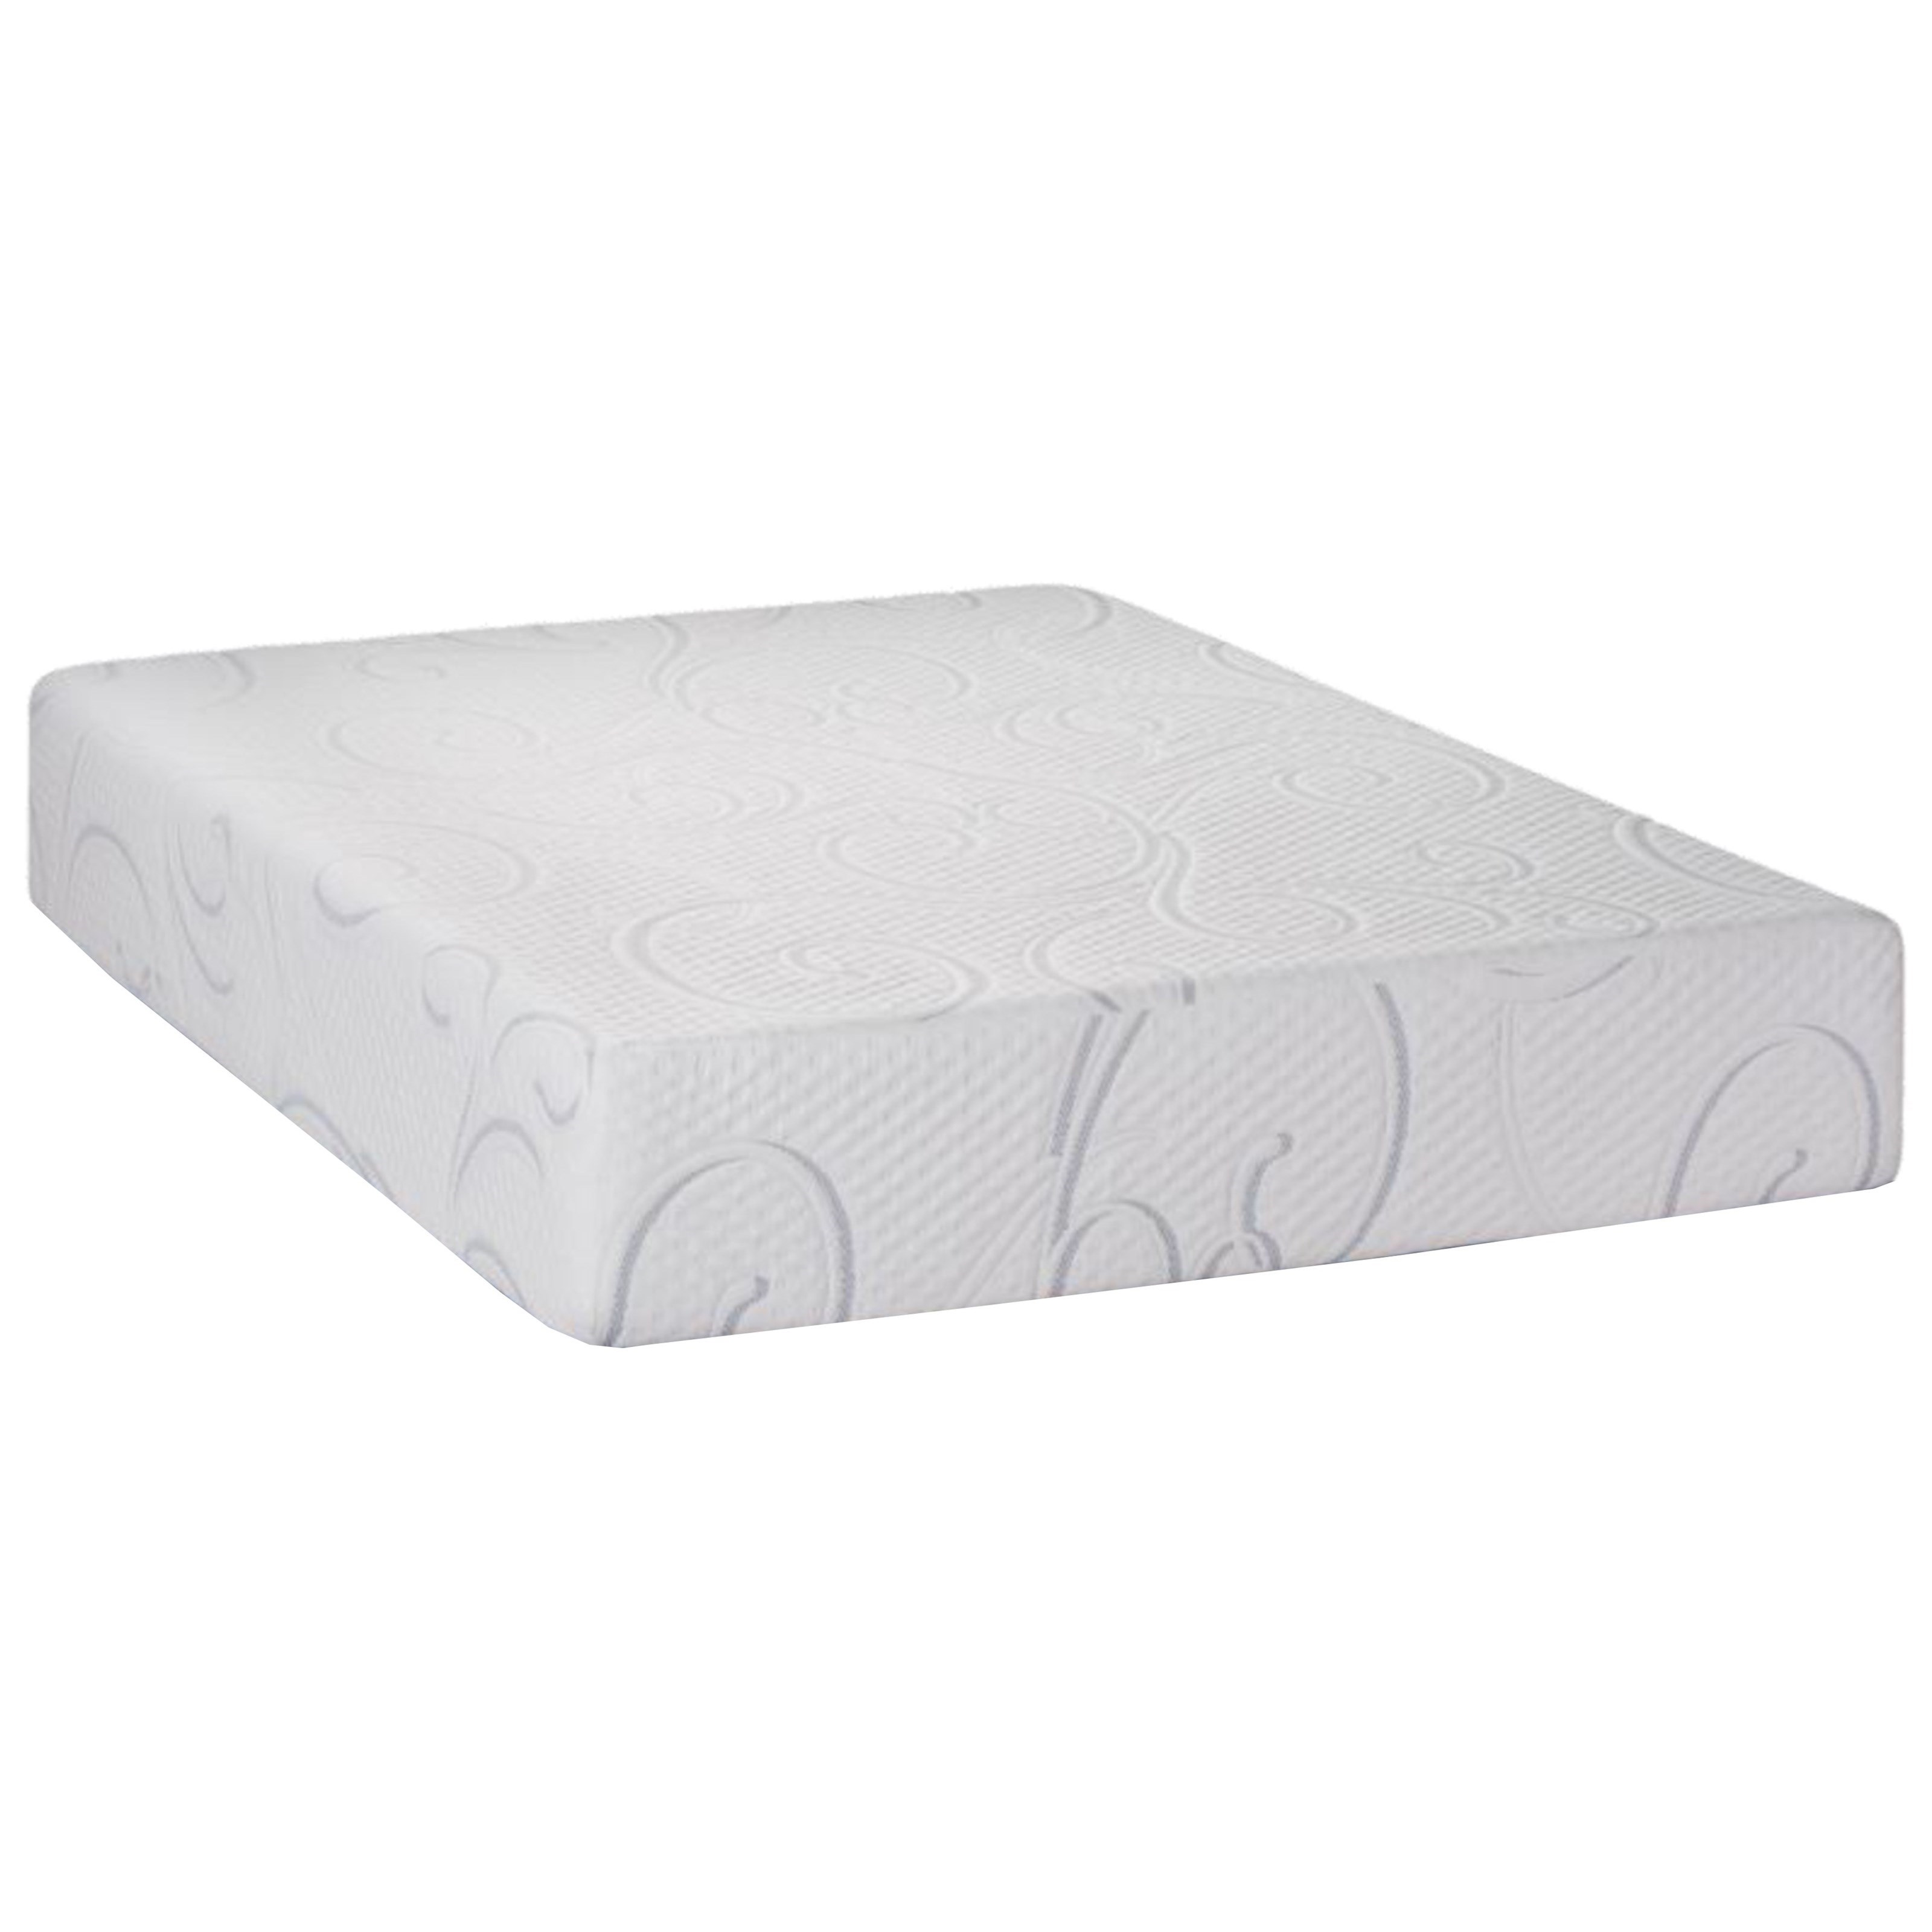 "Queen 12"" Gel Memory Foam Adj Set"